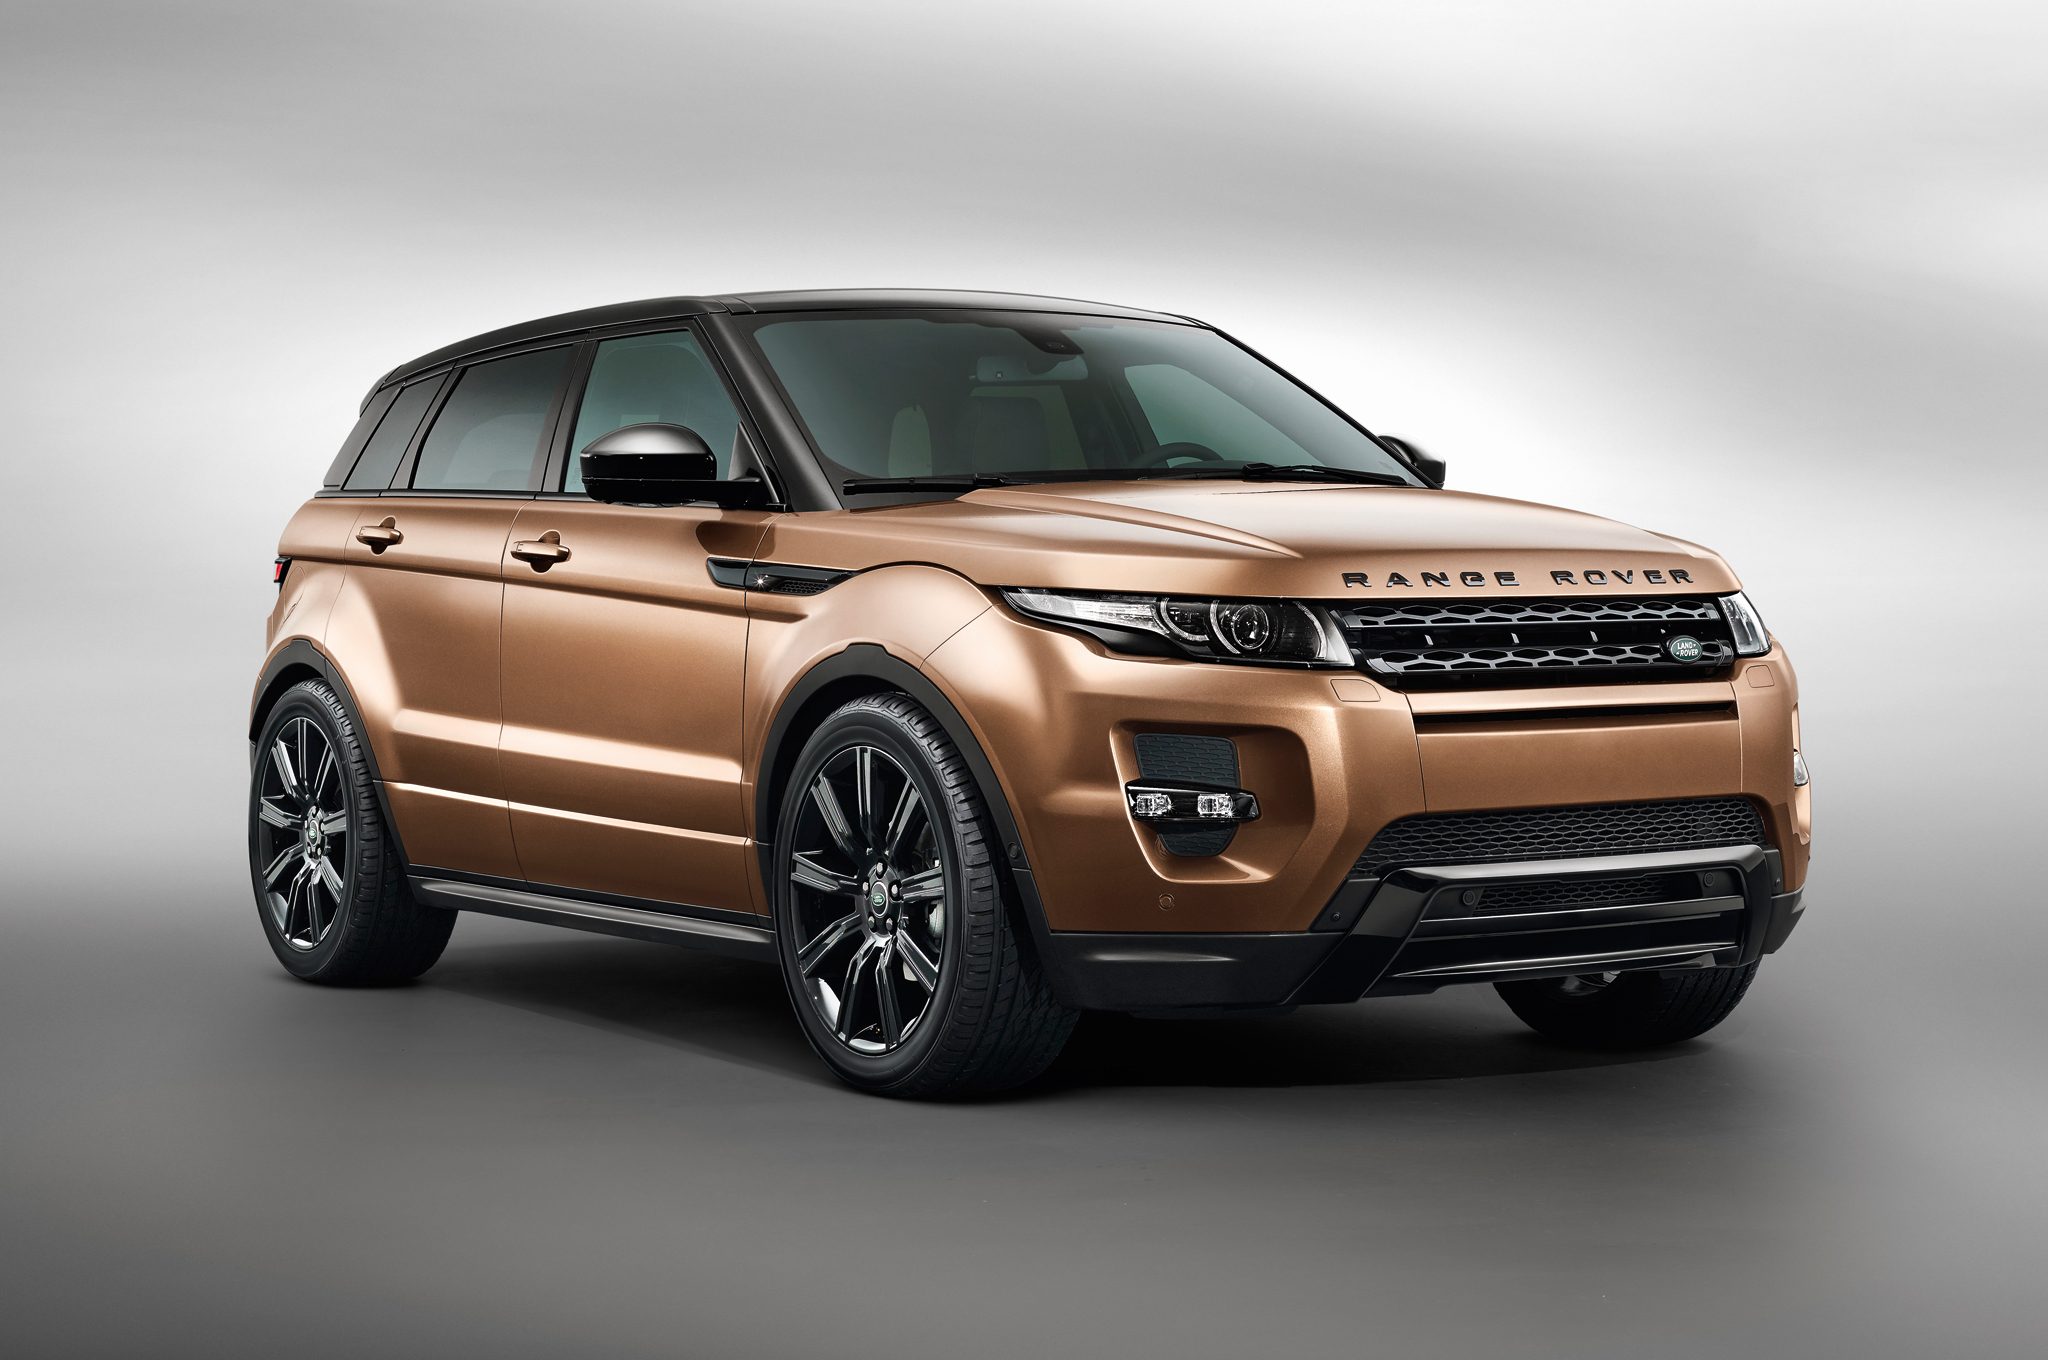 2014 Range Rover Evoque to Get Estimated 21/30 MPG With 9A